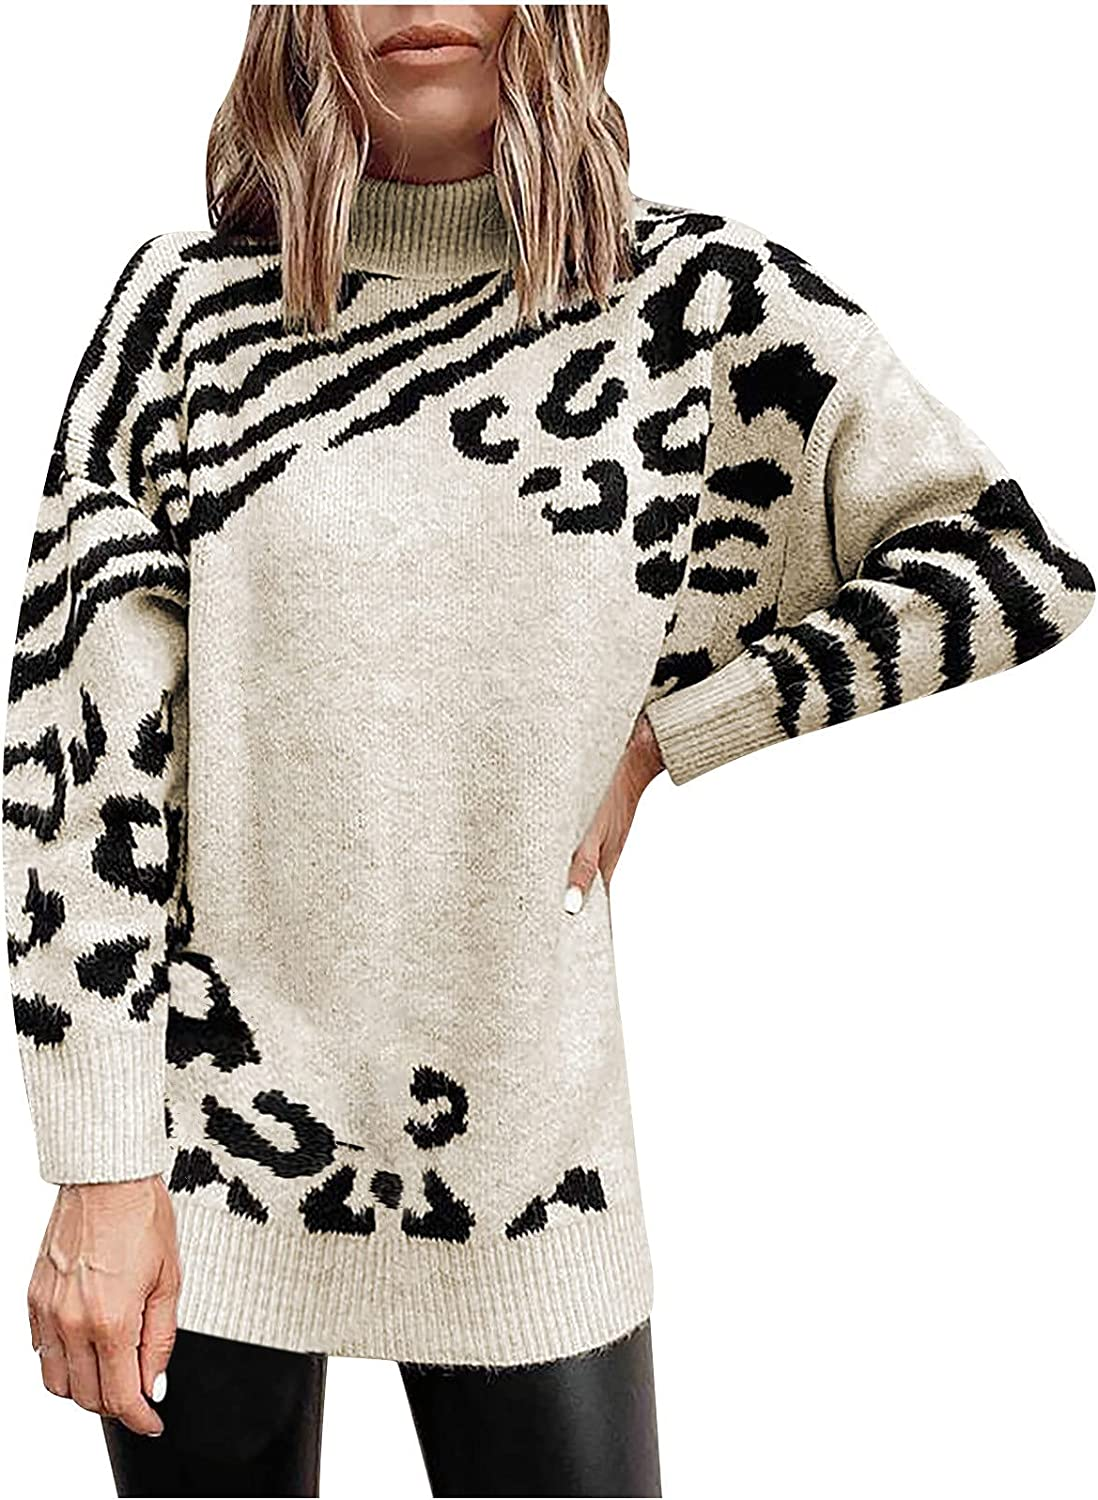 RFNIU Womens Plus Size Turtleneck Sweater Fall/Winter Casual Leopard Knit Pullover Tunic Sweaters Long Sleeve Shirt Tops